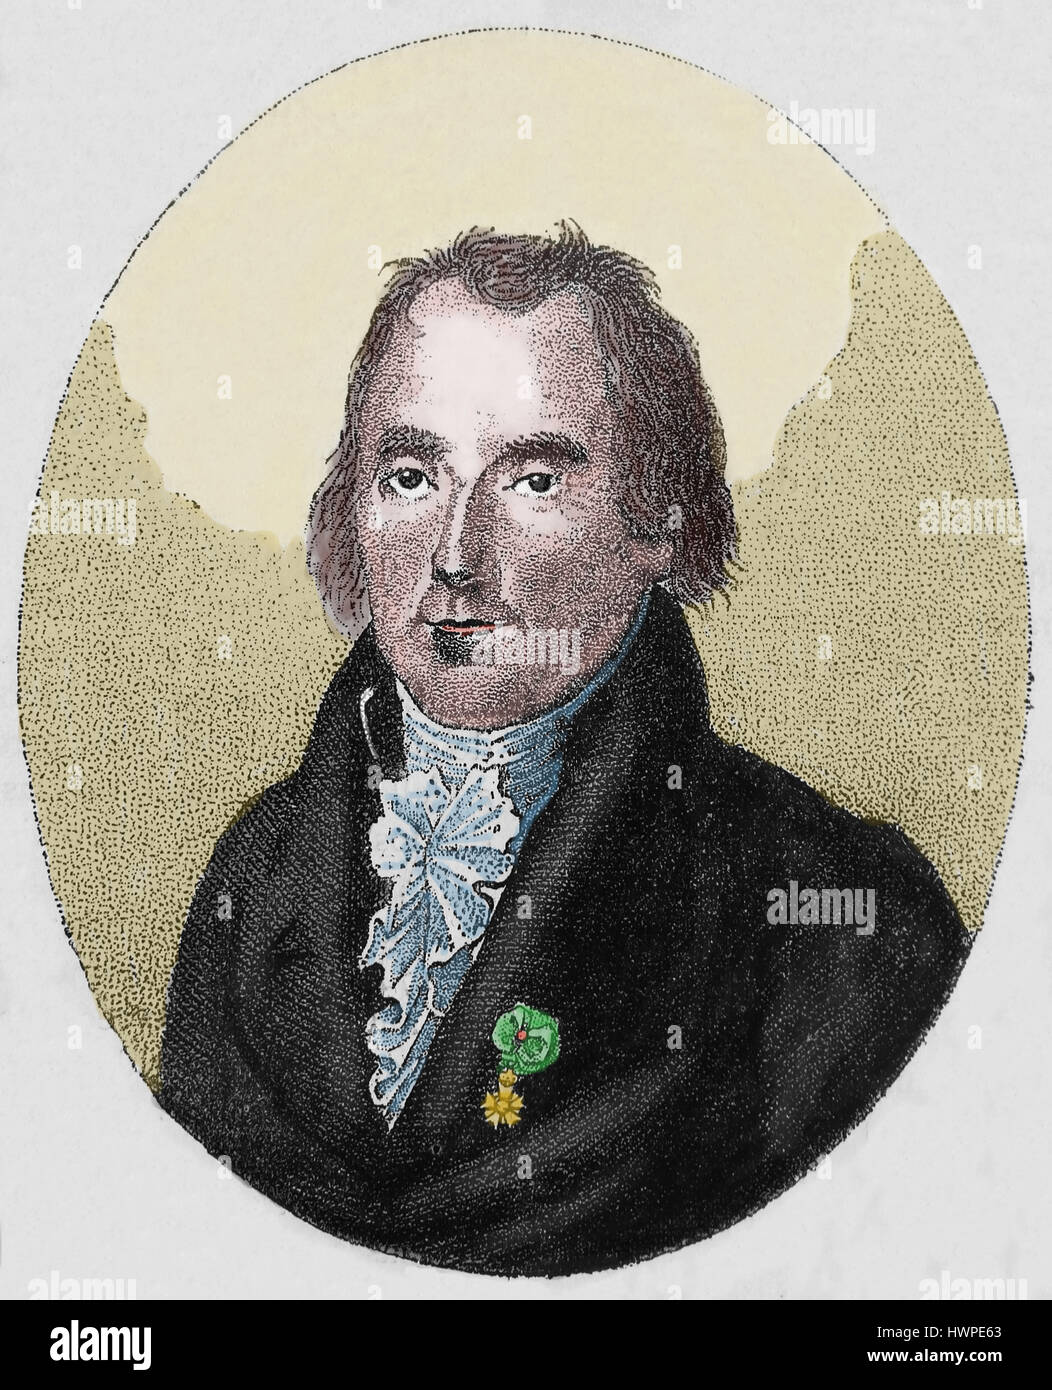 Pierre-Simon Laplace (1749-1827). French astronomer and mathematician. Engraving, 1883. Portrait. Colored. - Stock Image